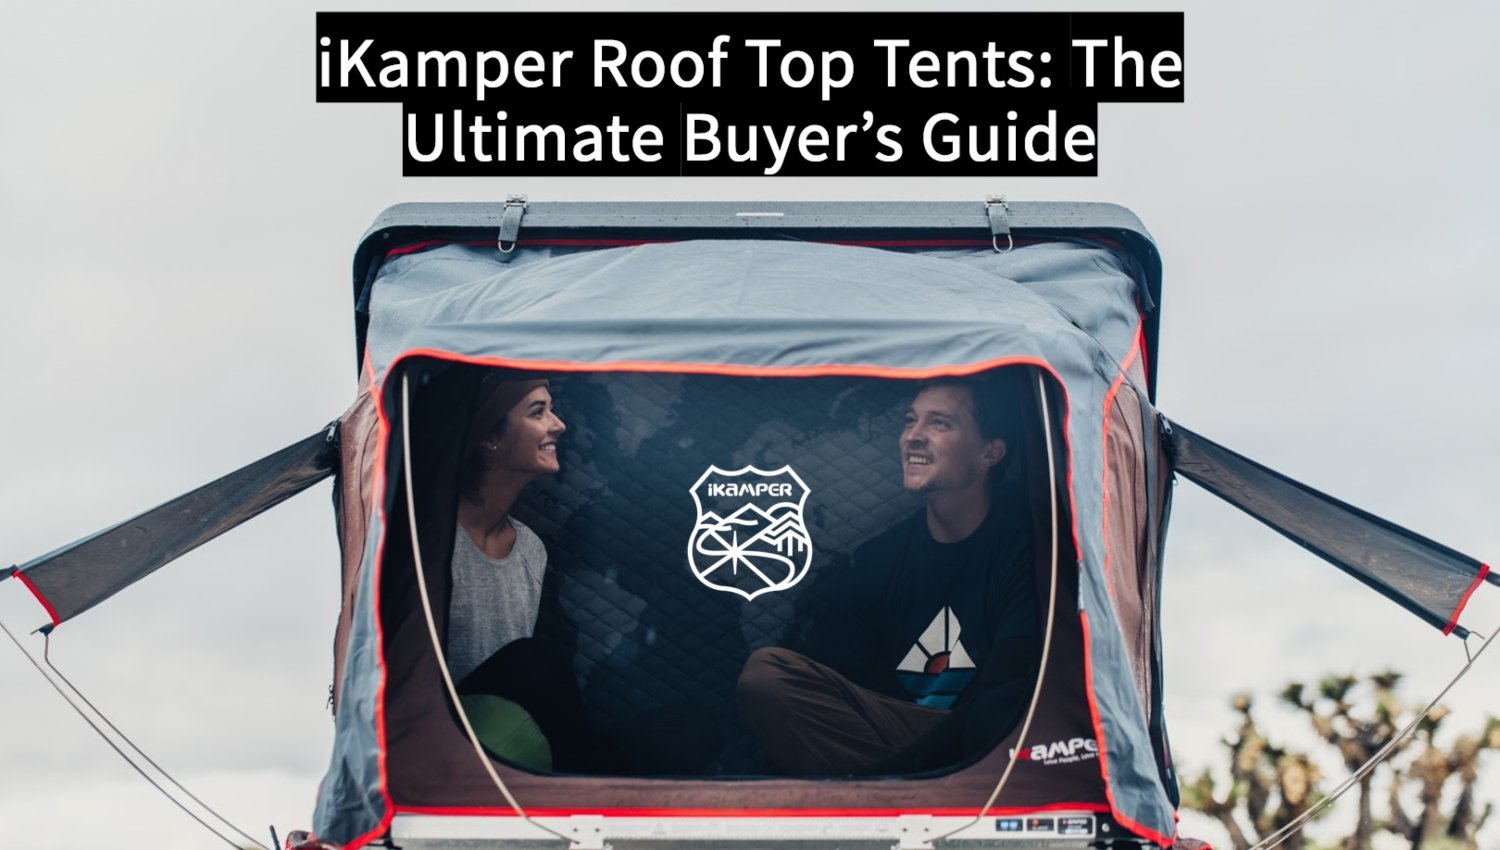 The Ultimate Buyer's Guide